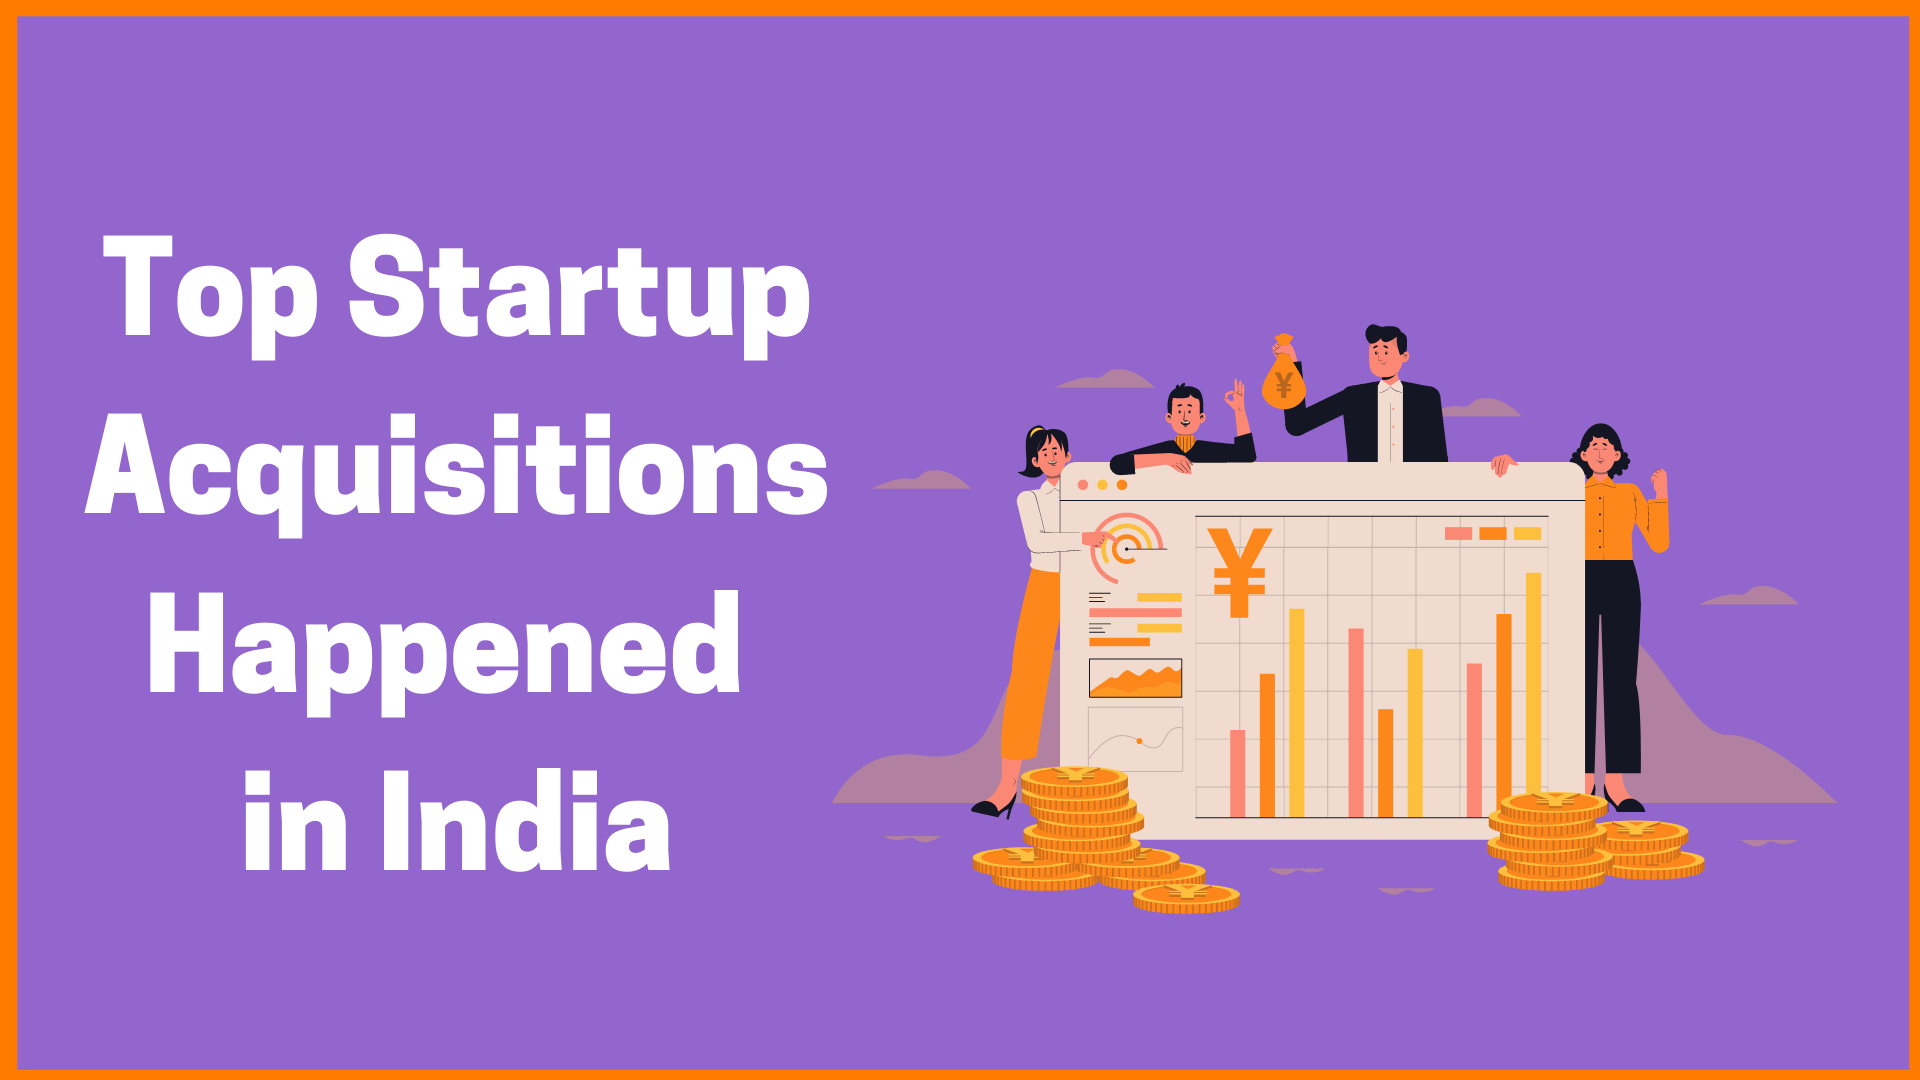 Top Startup Acquisitions Happened in India